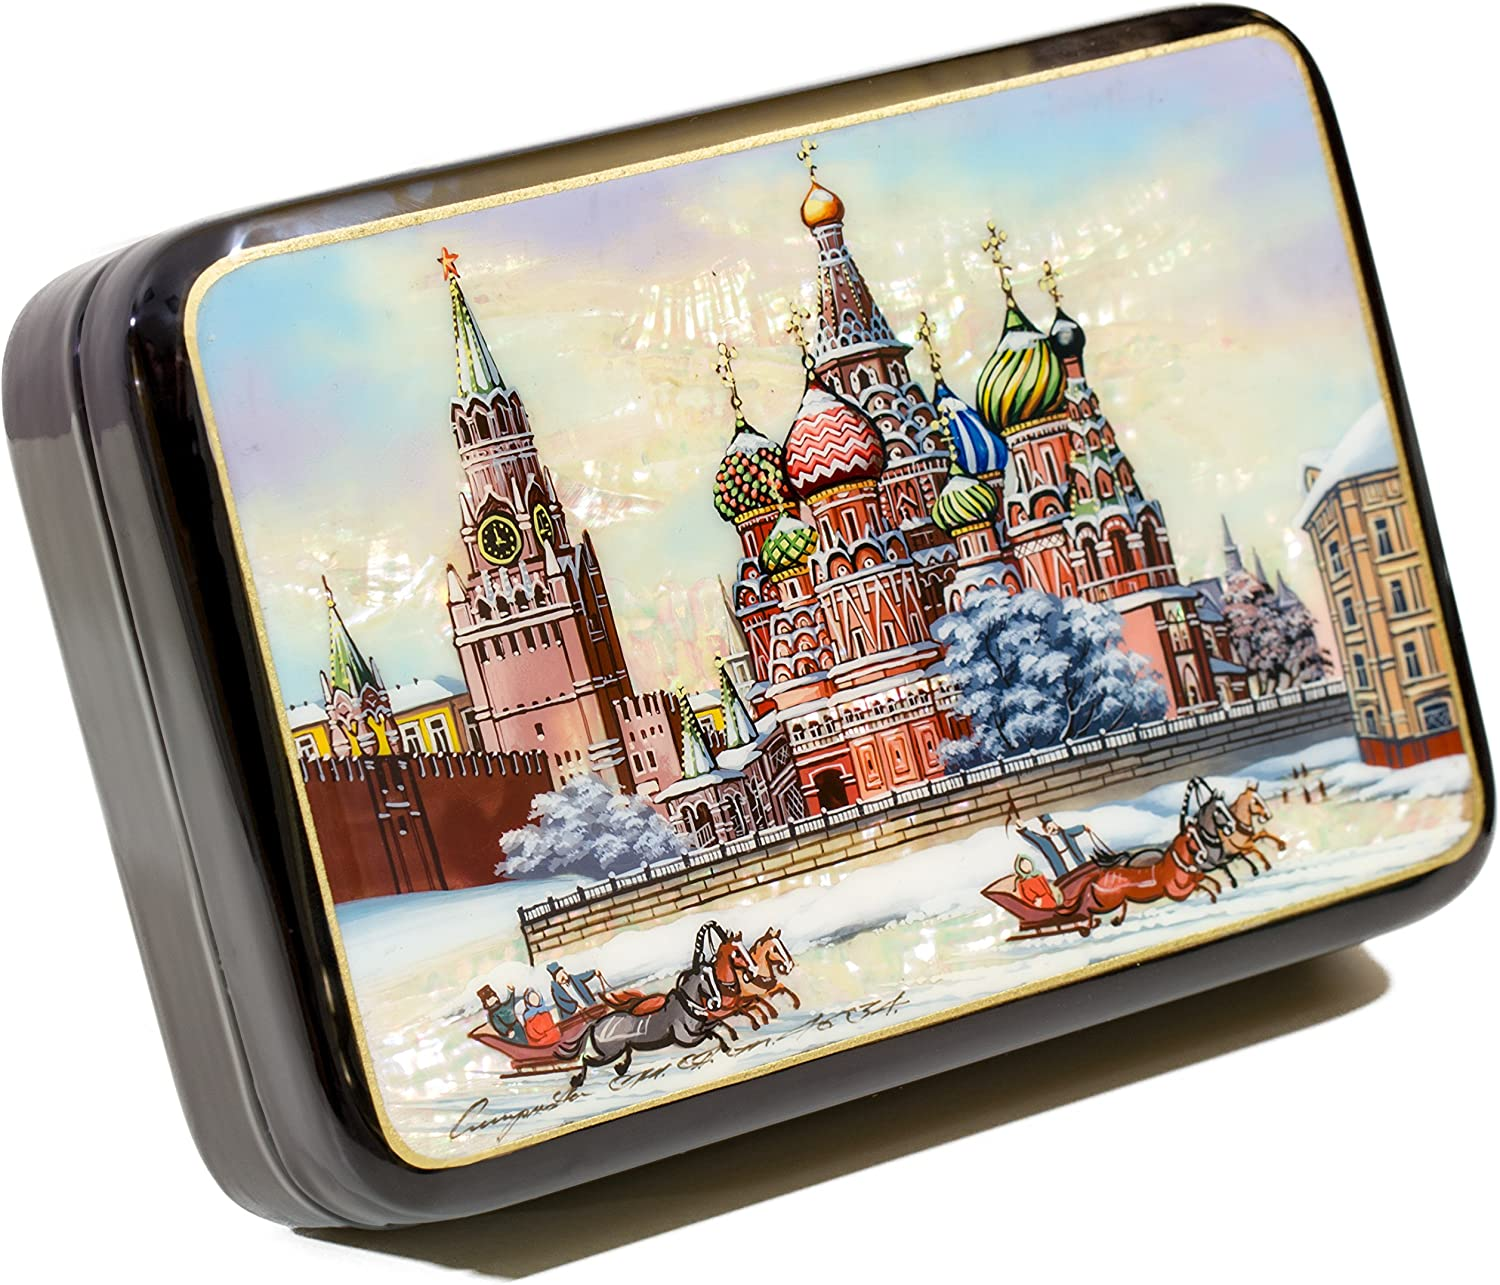 Russian Fedoskino Original Lacquer Box - Hand Painted in Russia - Collectible Art Quality - 10 Size&Design Variations (Medium, Design B)